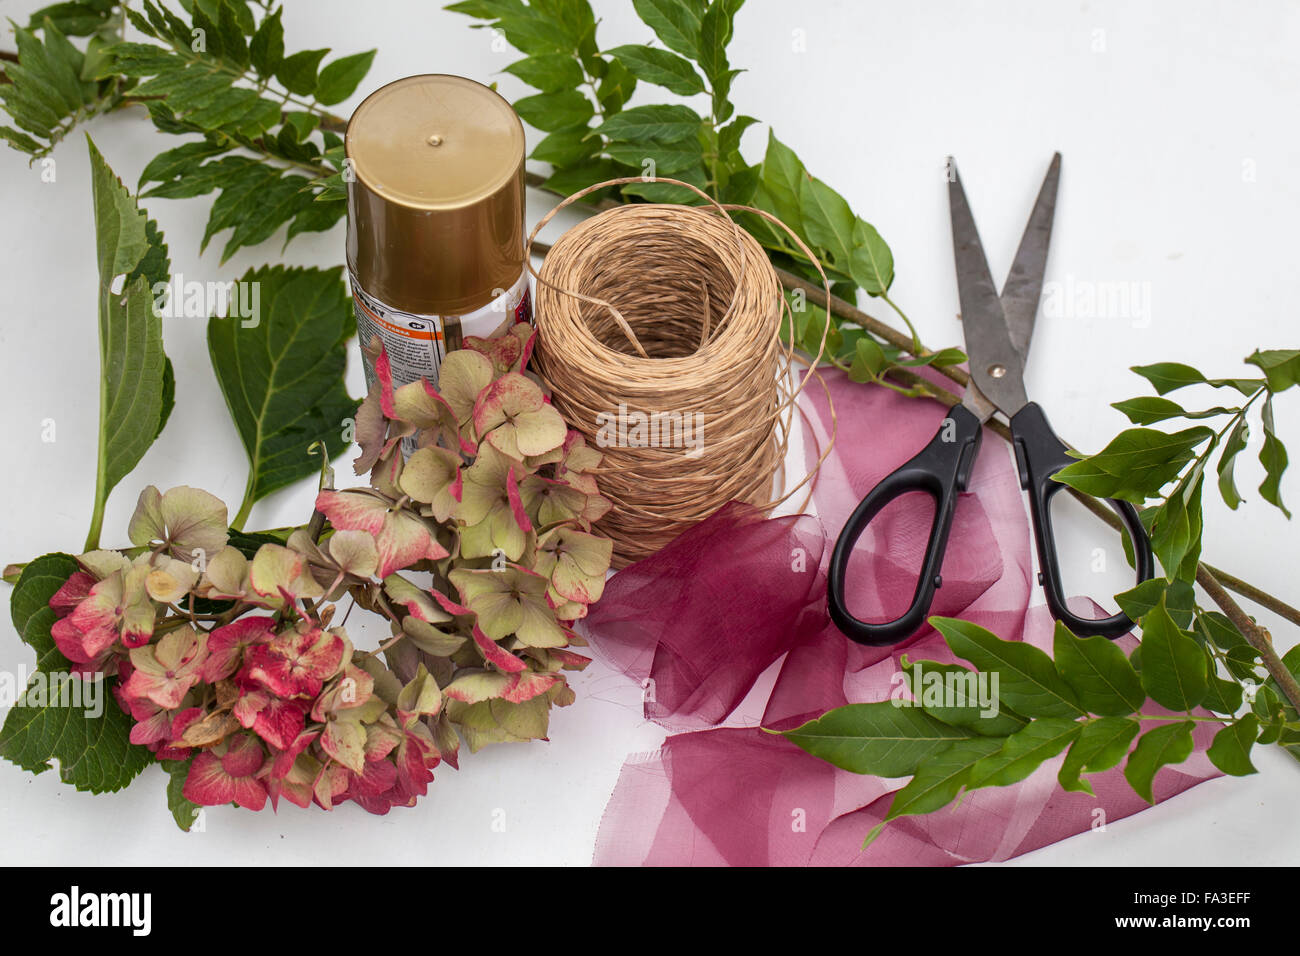 Material hydrangea flowers wisteria branches wire scissors stock material hydrangea flowers wisteria branches wire scissors ribbon gold spray paint procedure make a circle of wisteria branches mightylinksfo